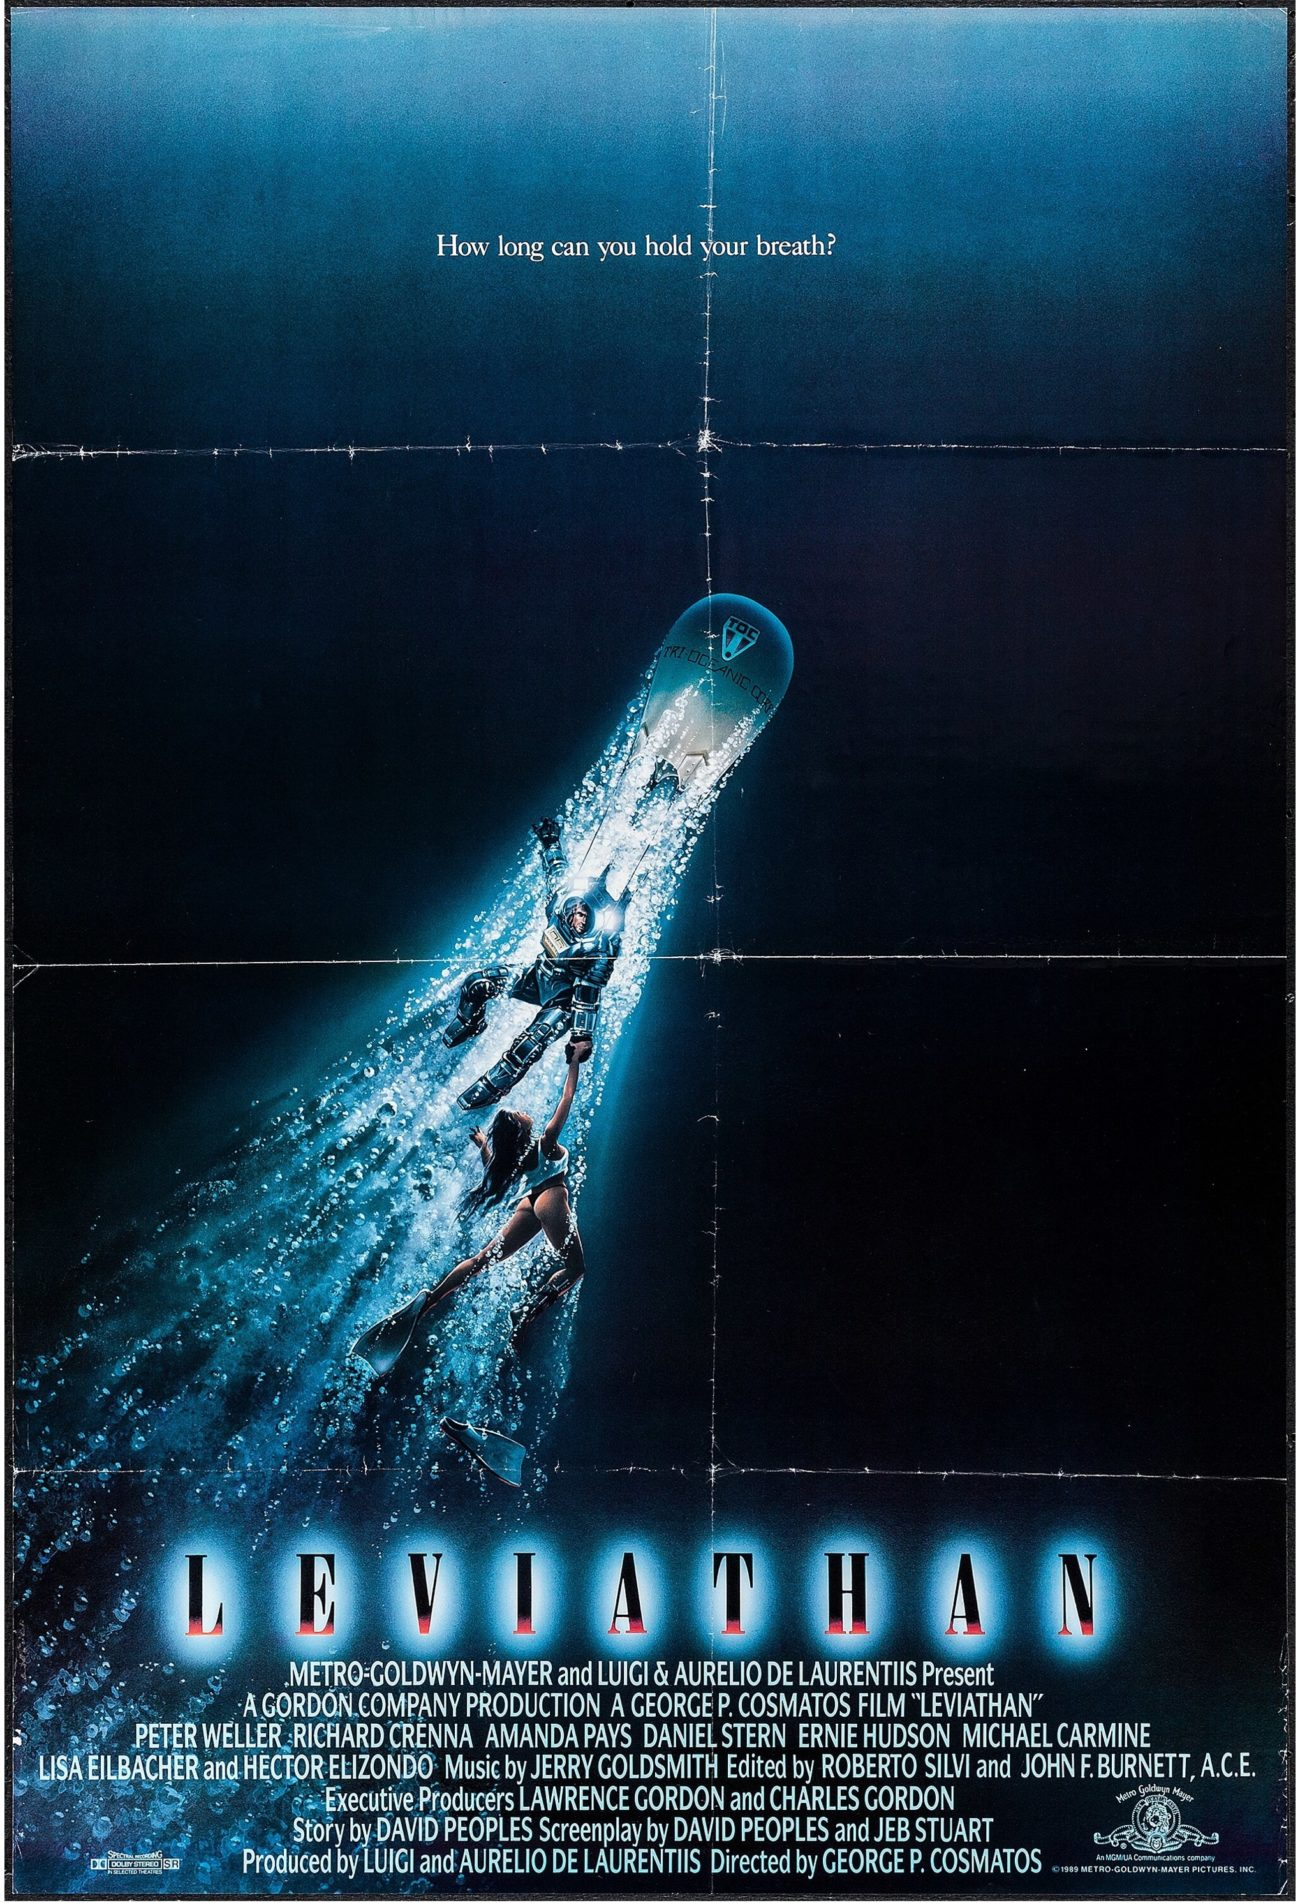 Leviathan (1989) movie poster – Dangerous Universe